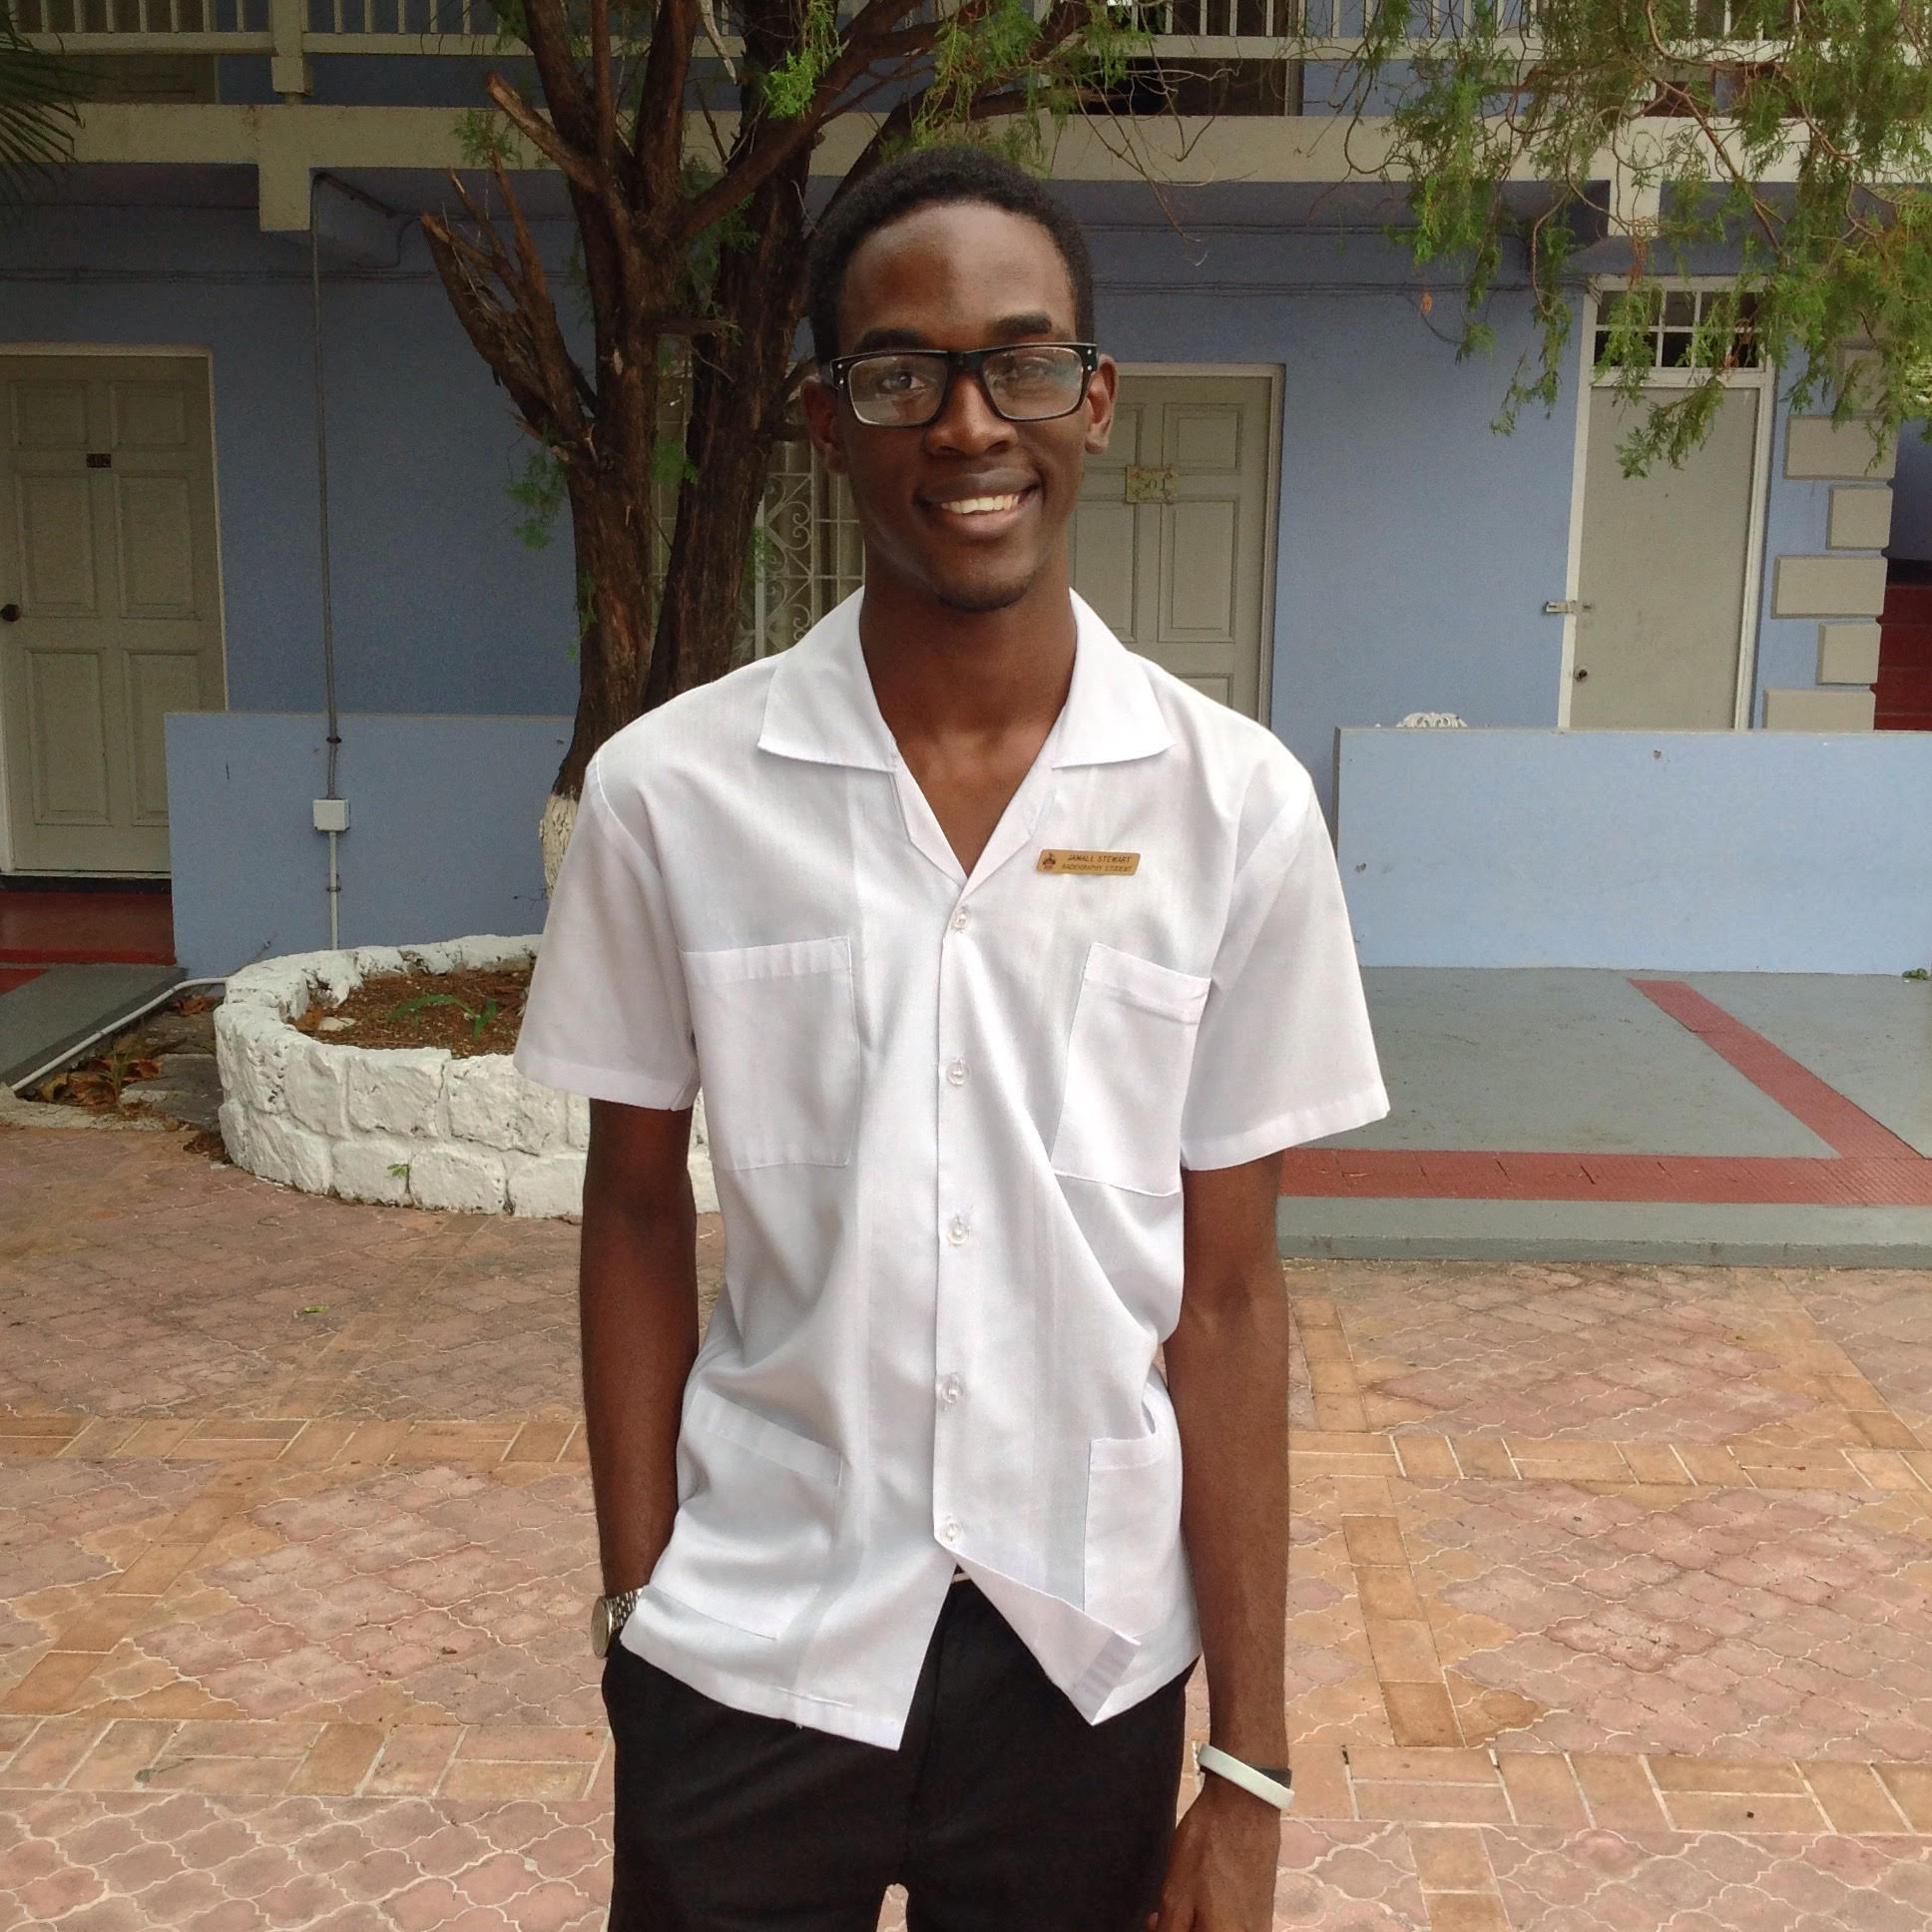 """- Name: Jamall StewartUniversity/ College: University of West Indies""""Already, receiving this scholarship has completely changed everything for me as it will help me to live a more comfortable university life without the stress or constant worrying about my university financial status. Furthermore, a great weight has been lifted from my family's shoulders. I'm just extremely proud to know that I have worked so hard, and God has made a way through the Land We Love Scholarship to provide this opportunity to not only myself but to ten other students."""""""